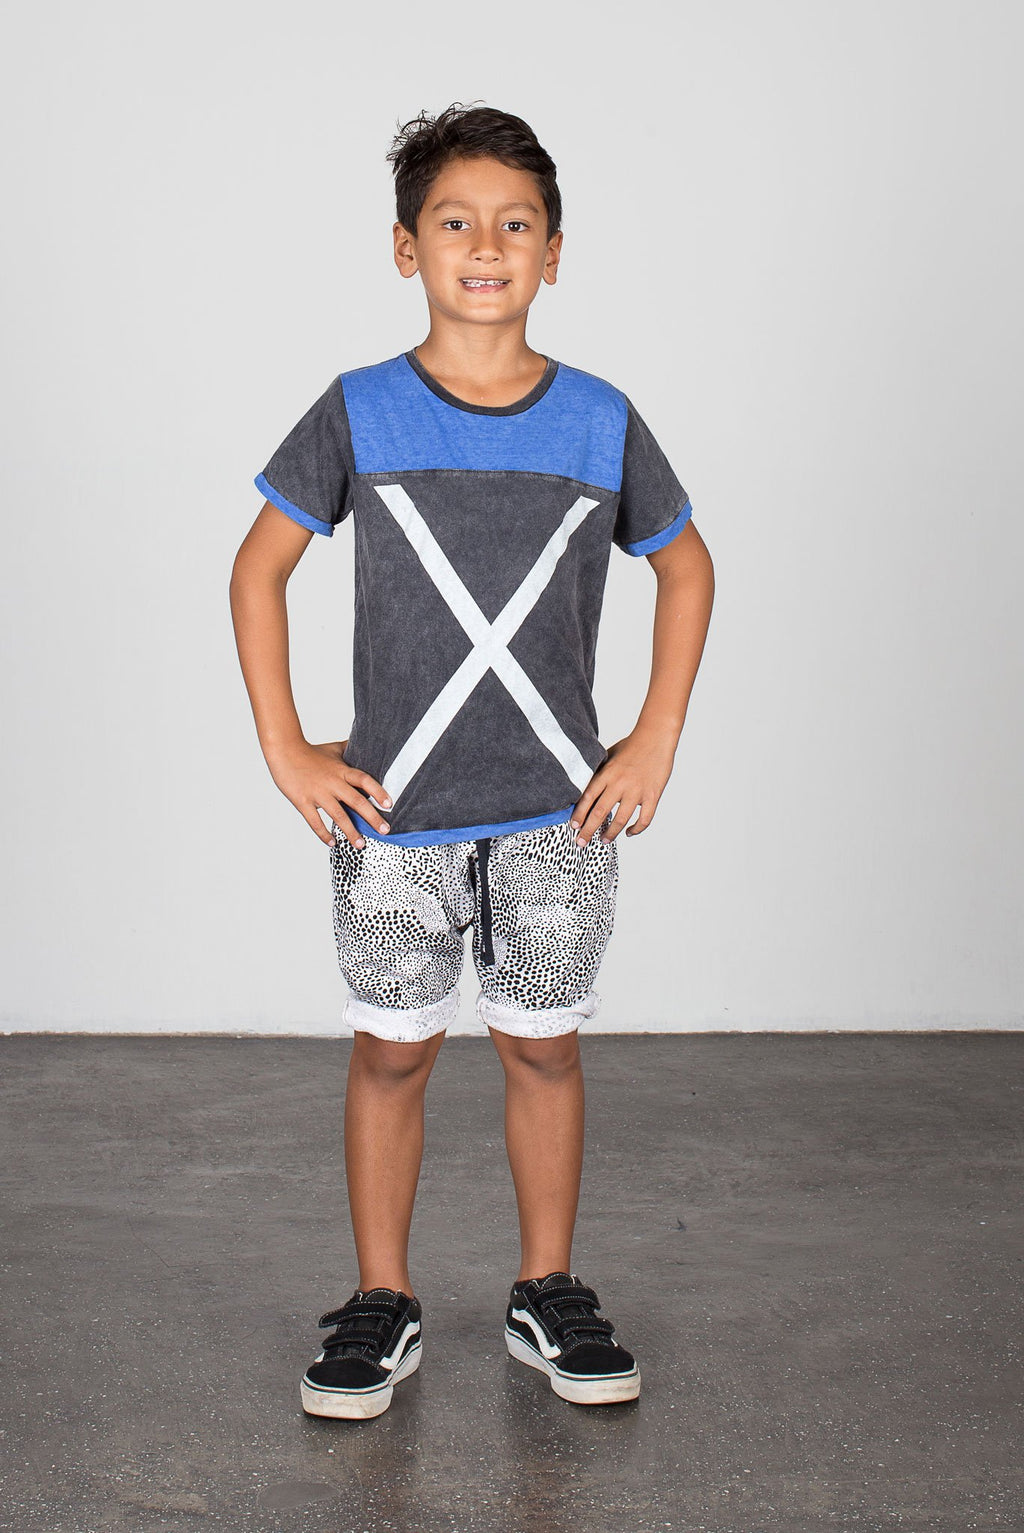 Abstract Low Crotch Track Short Black/White - Zuttion